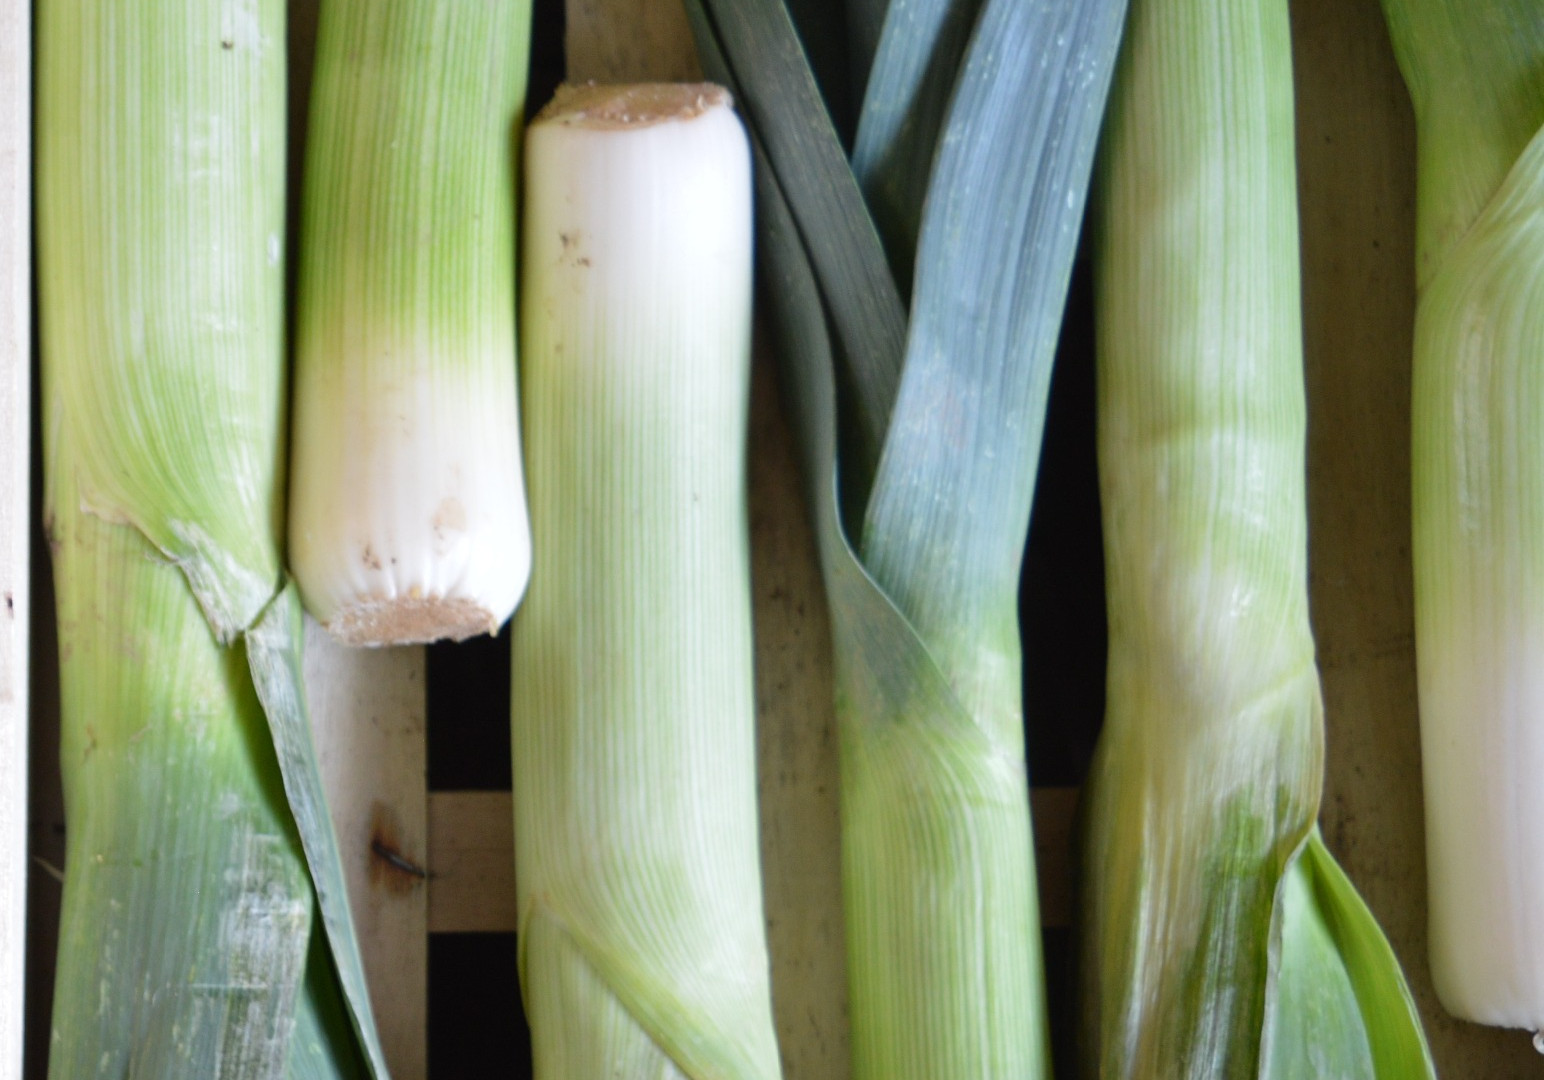 Winter - Leek